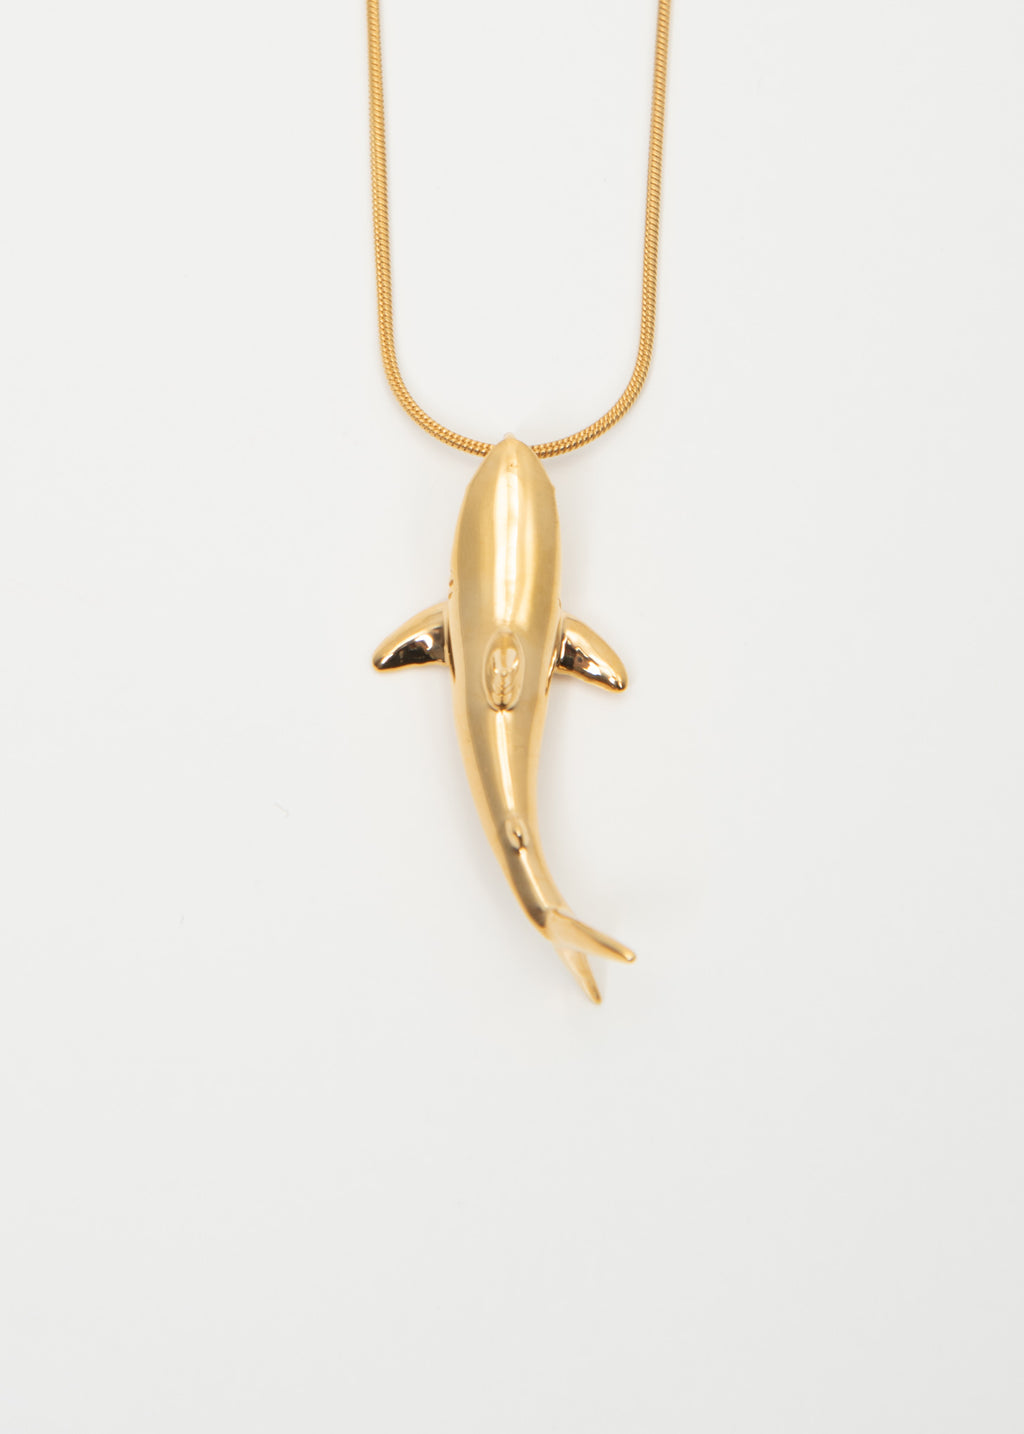 Gold Shark Necklaces